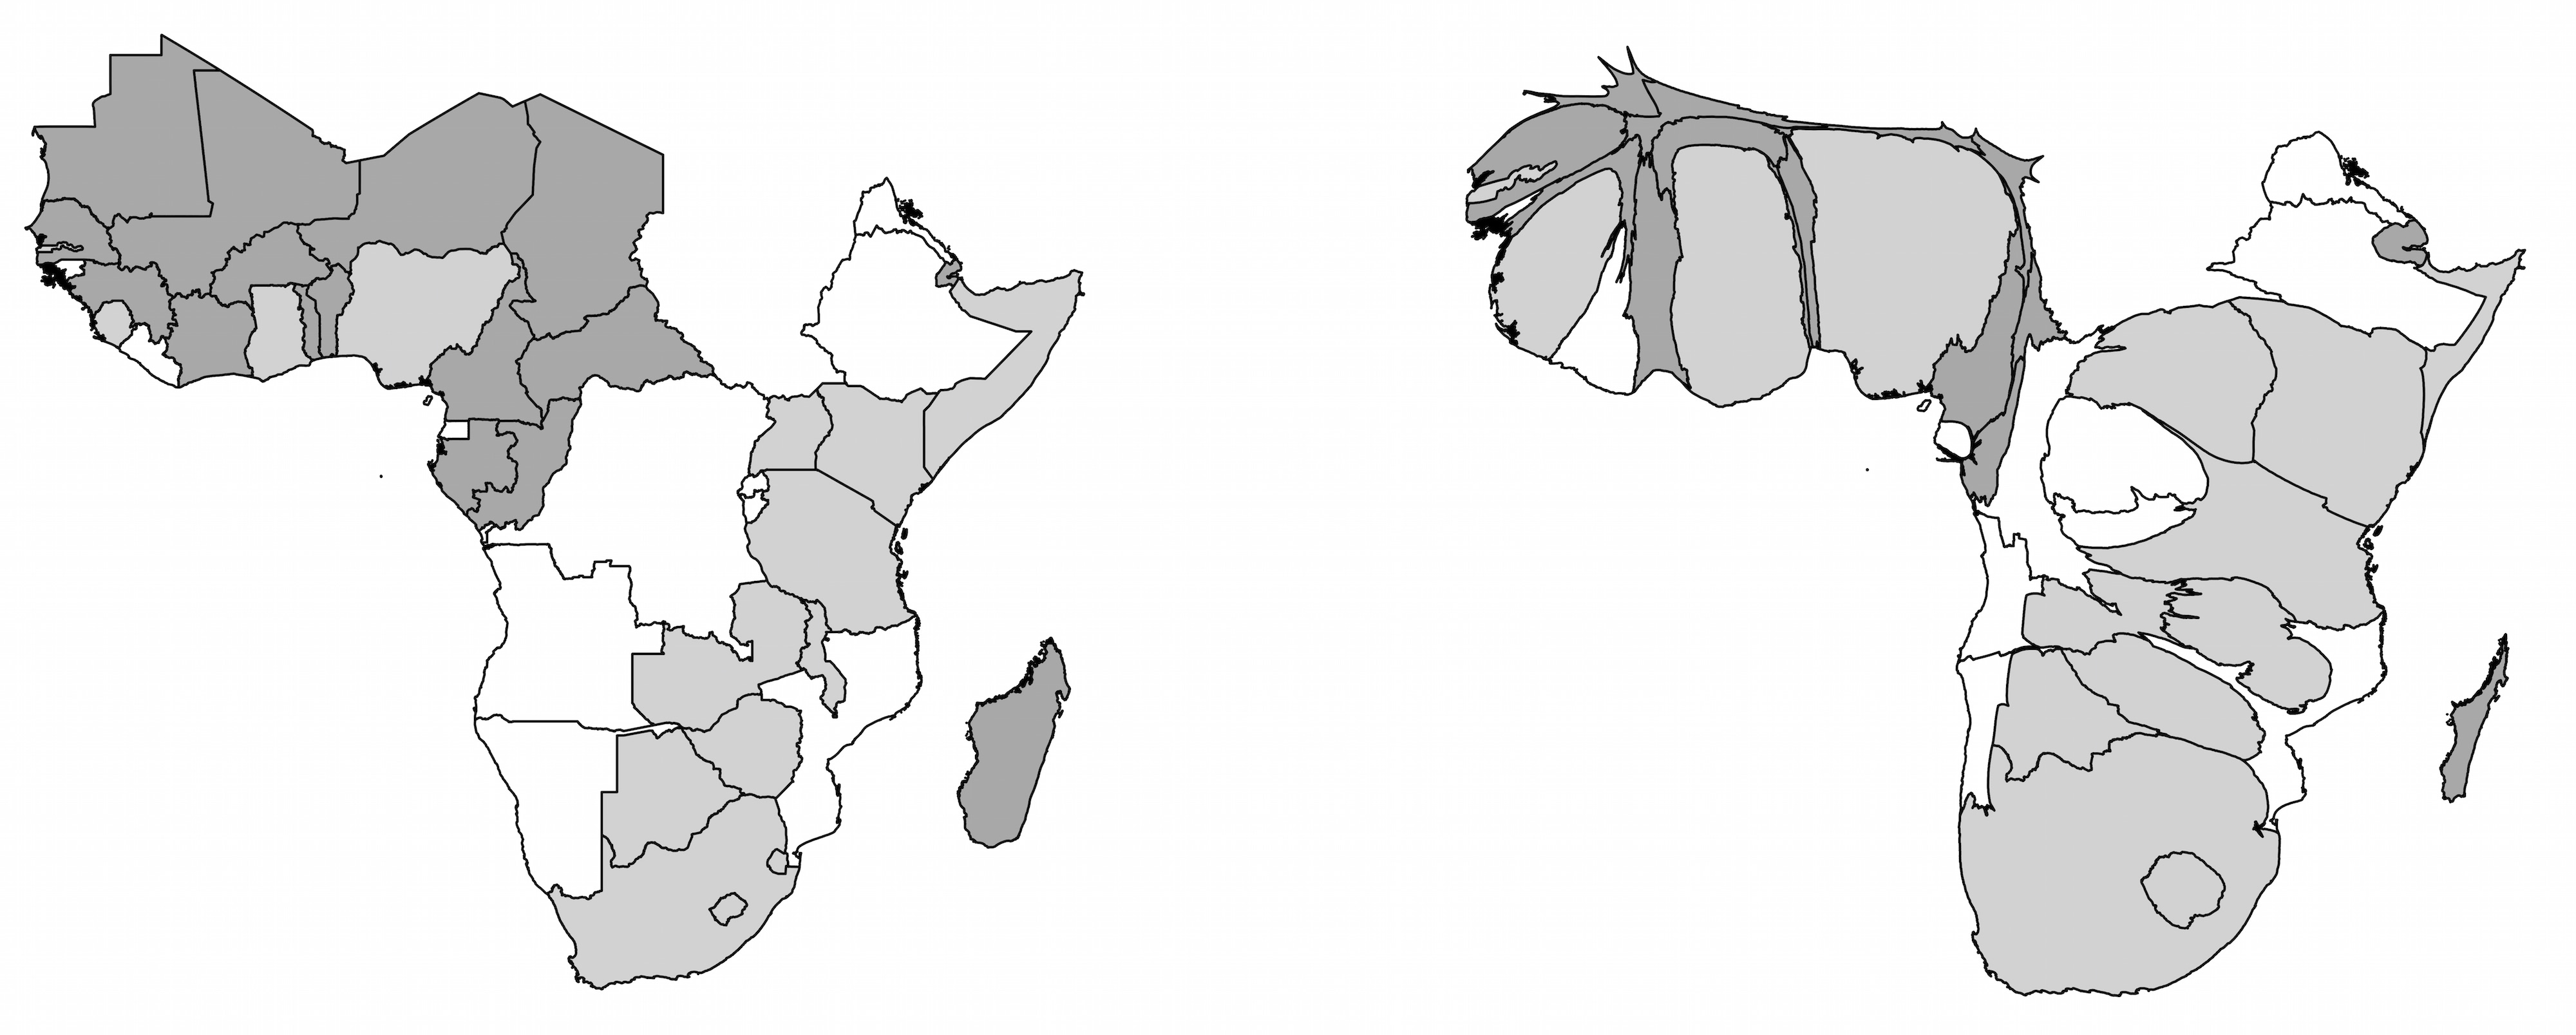 The cartogram on the right shows the same map after it has been distorted so that the area of a country is approximately proportionate to the number of articles written about it between 1993 and 2013. Light grey countries were British colonies and dark grey countries were French colonies.